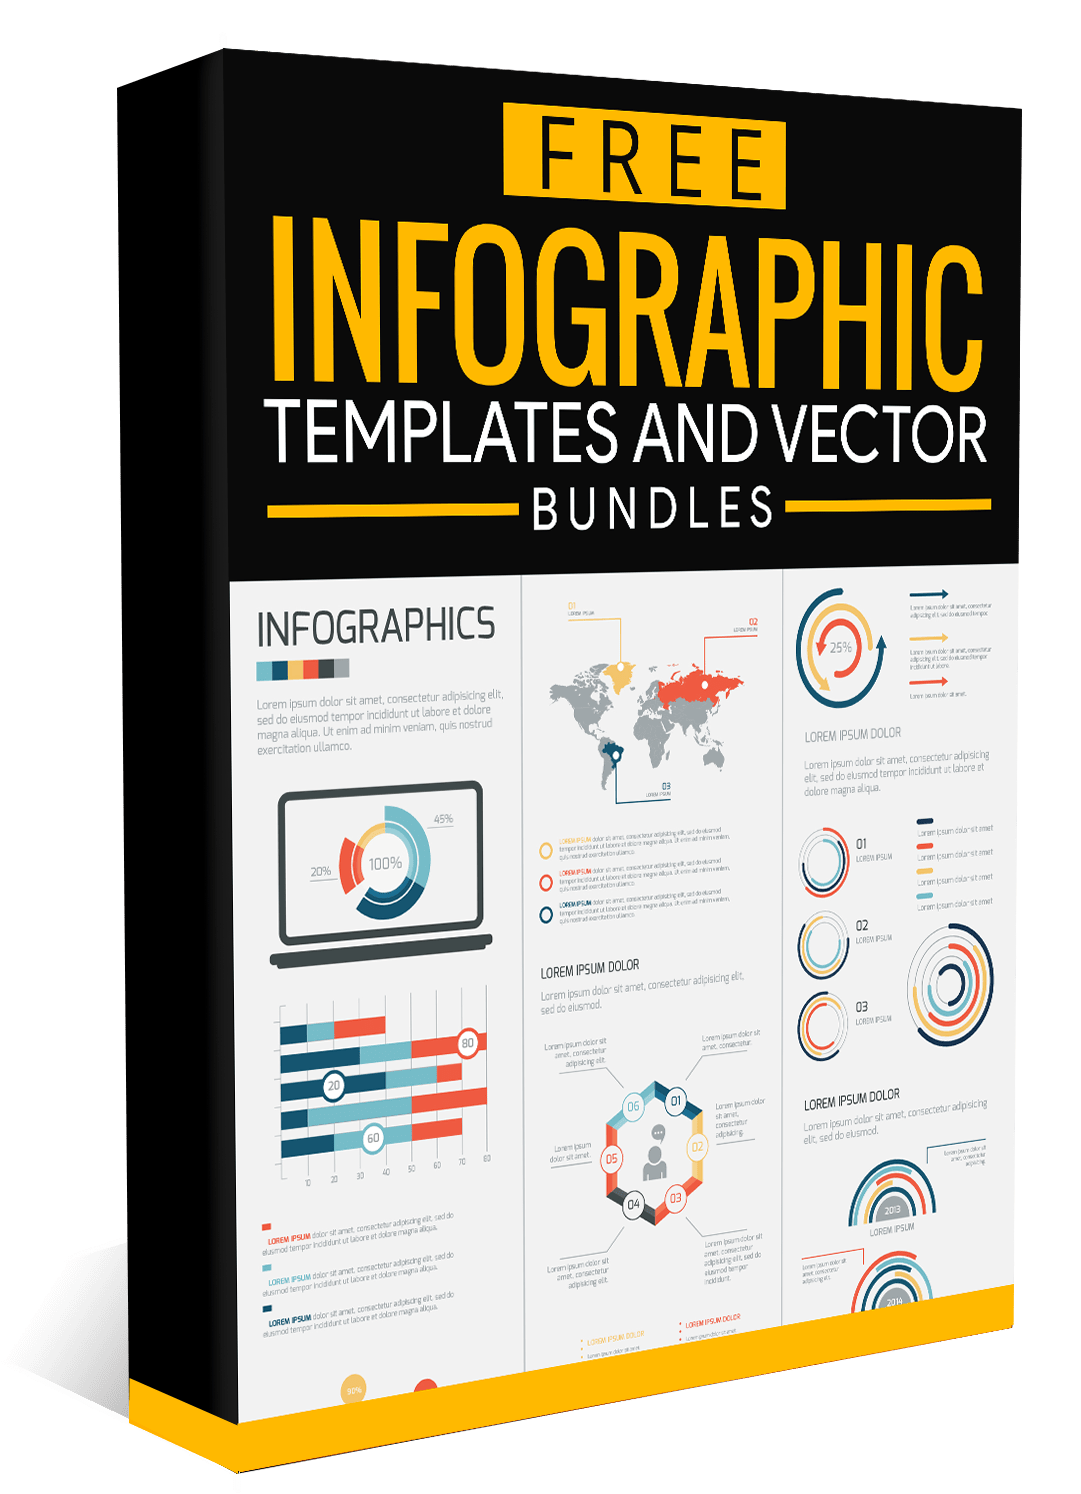 [Image: infographic-vectorbundles-eboxcover-6.png]